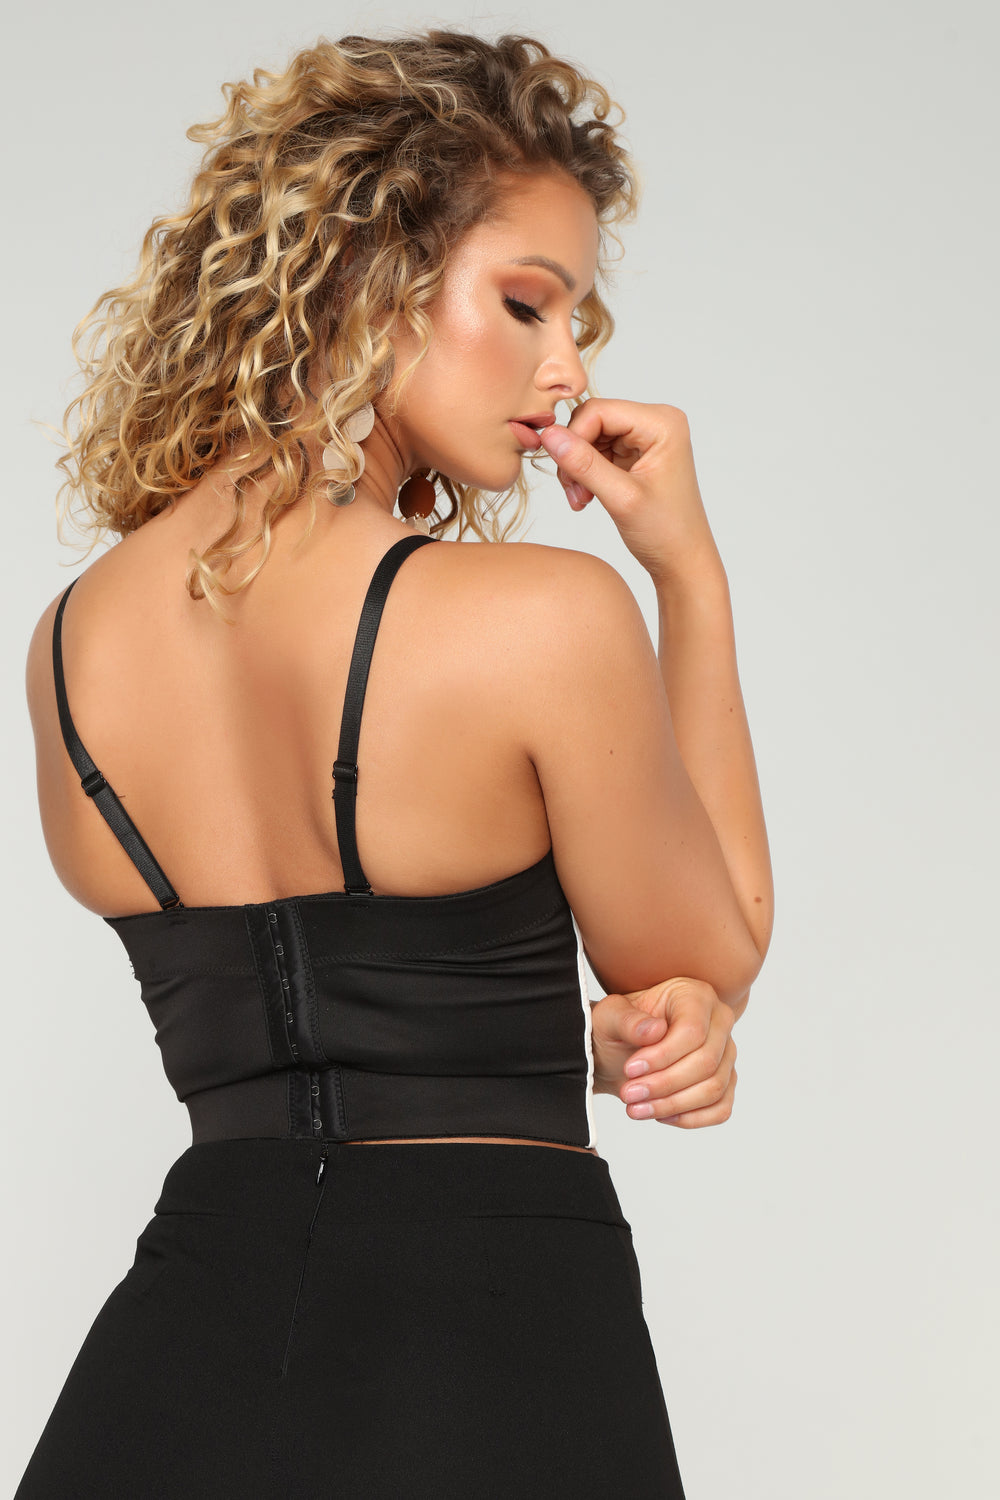 Let Me Think About It Bustier Top - Black/White